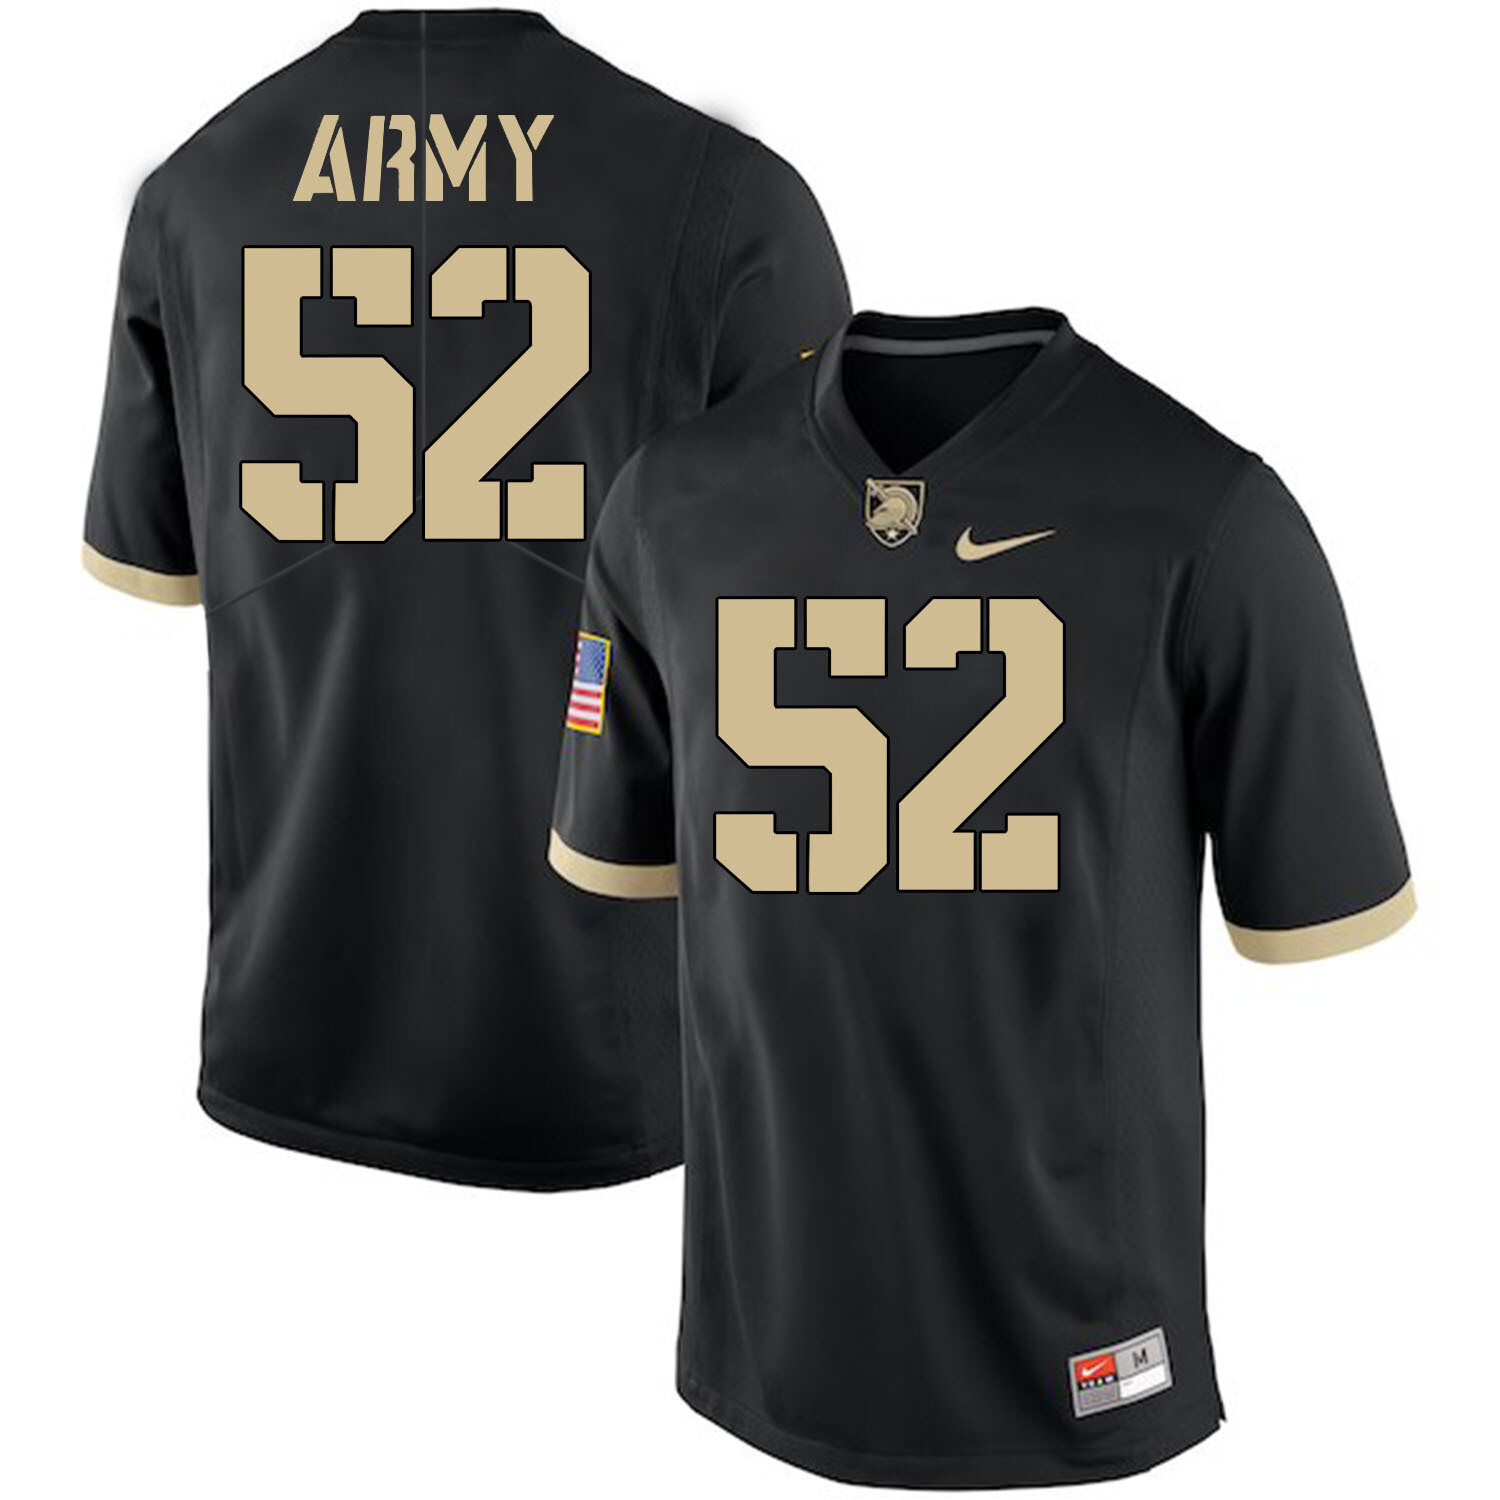 Army Black Knights #52 Spencer Welton Jersey Black College Football